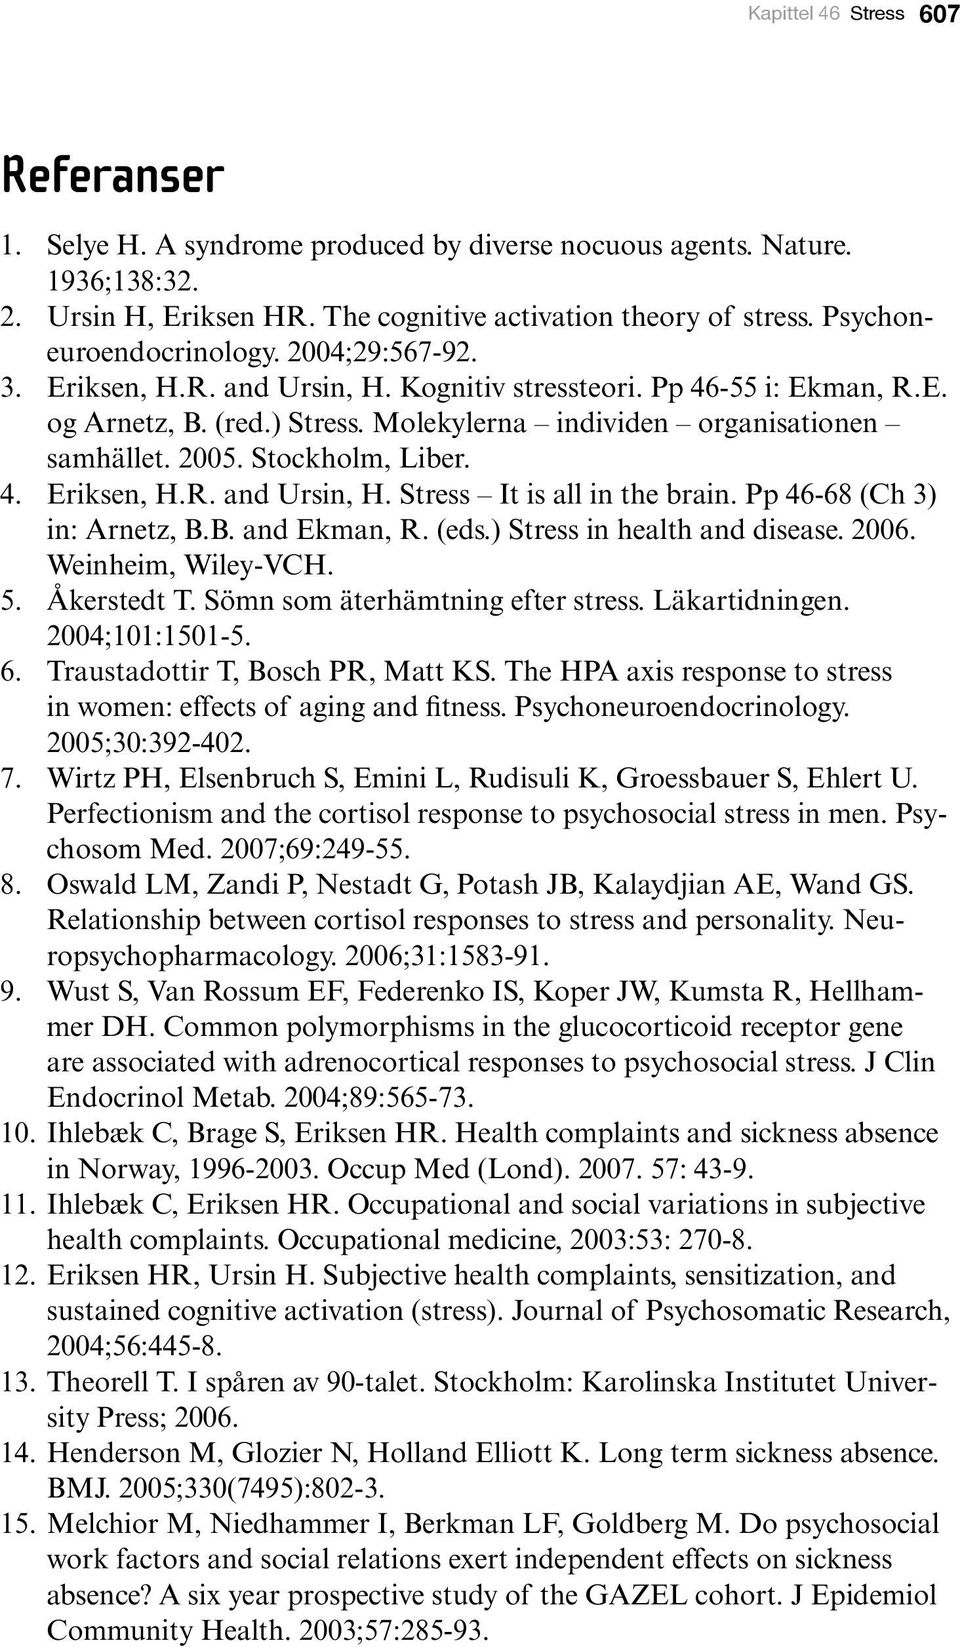 2005. Stockholm, Liber. 4. Eriksen, H.R. and Ursin, H. Stress It is all in the brain. Pp 46-68 (Ch 3) in: Arnetz, B.B. and Ekman, R. (eds.) Stress in health and disease. 2006. Weinheim, Wiley-VCH. 5.